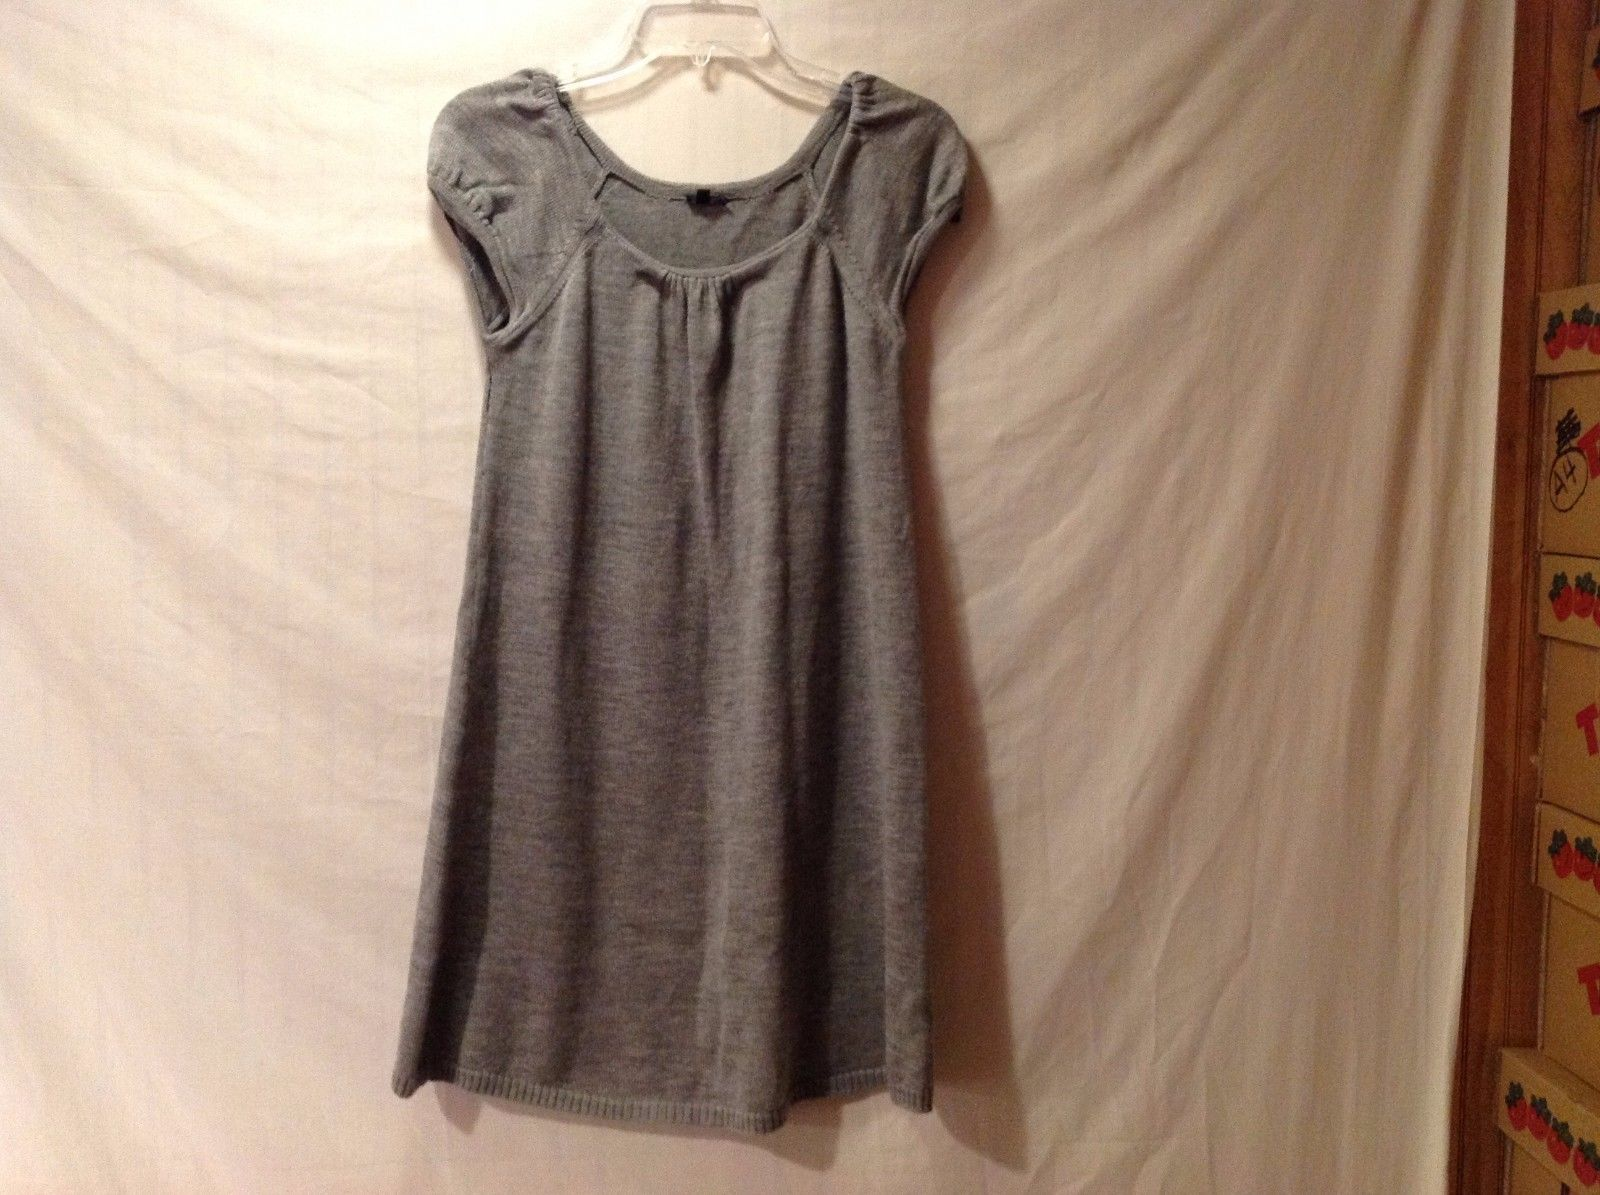 Women's JOSEPH Simple Gray Knit Cap Sleeve Dress